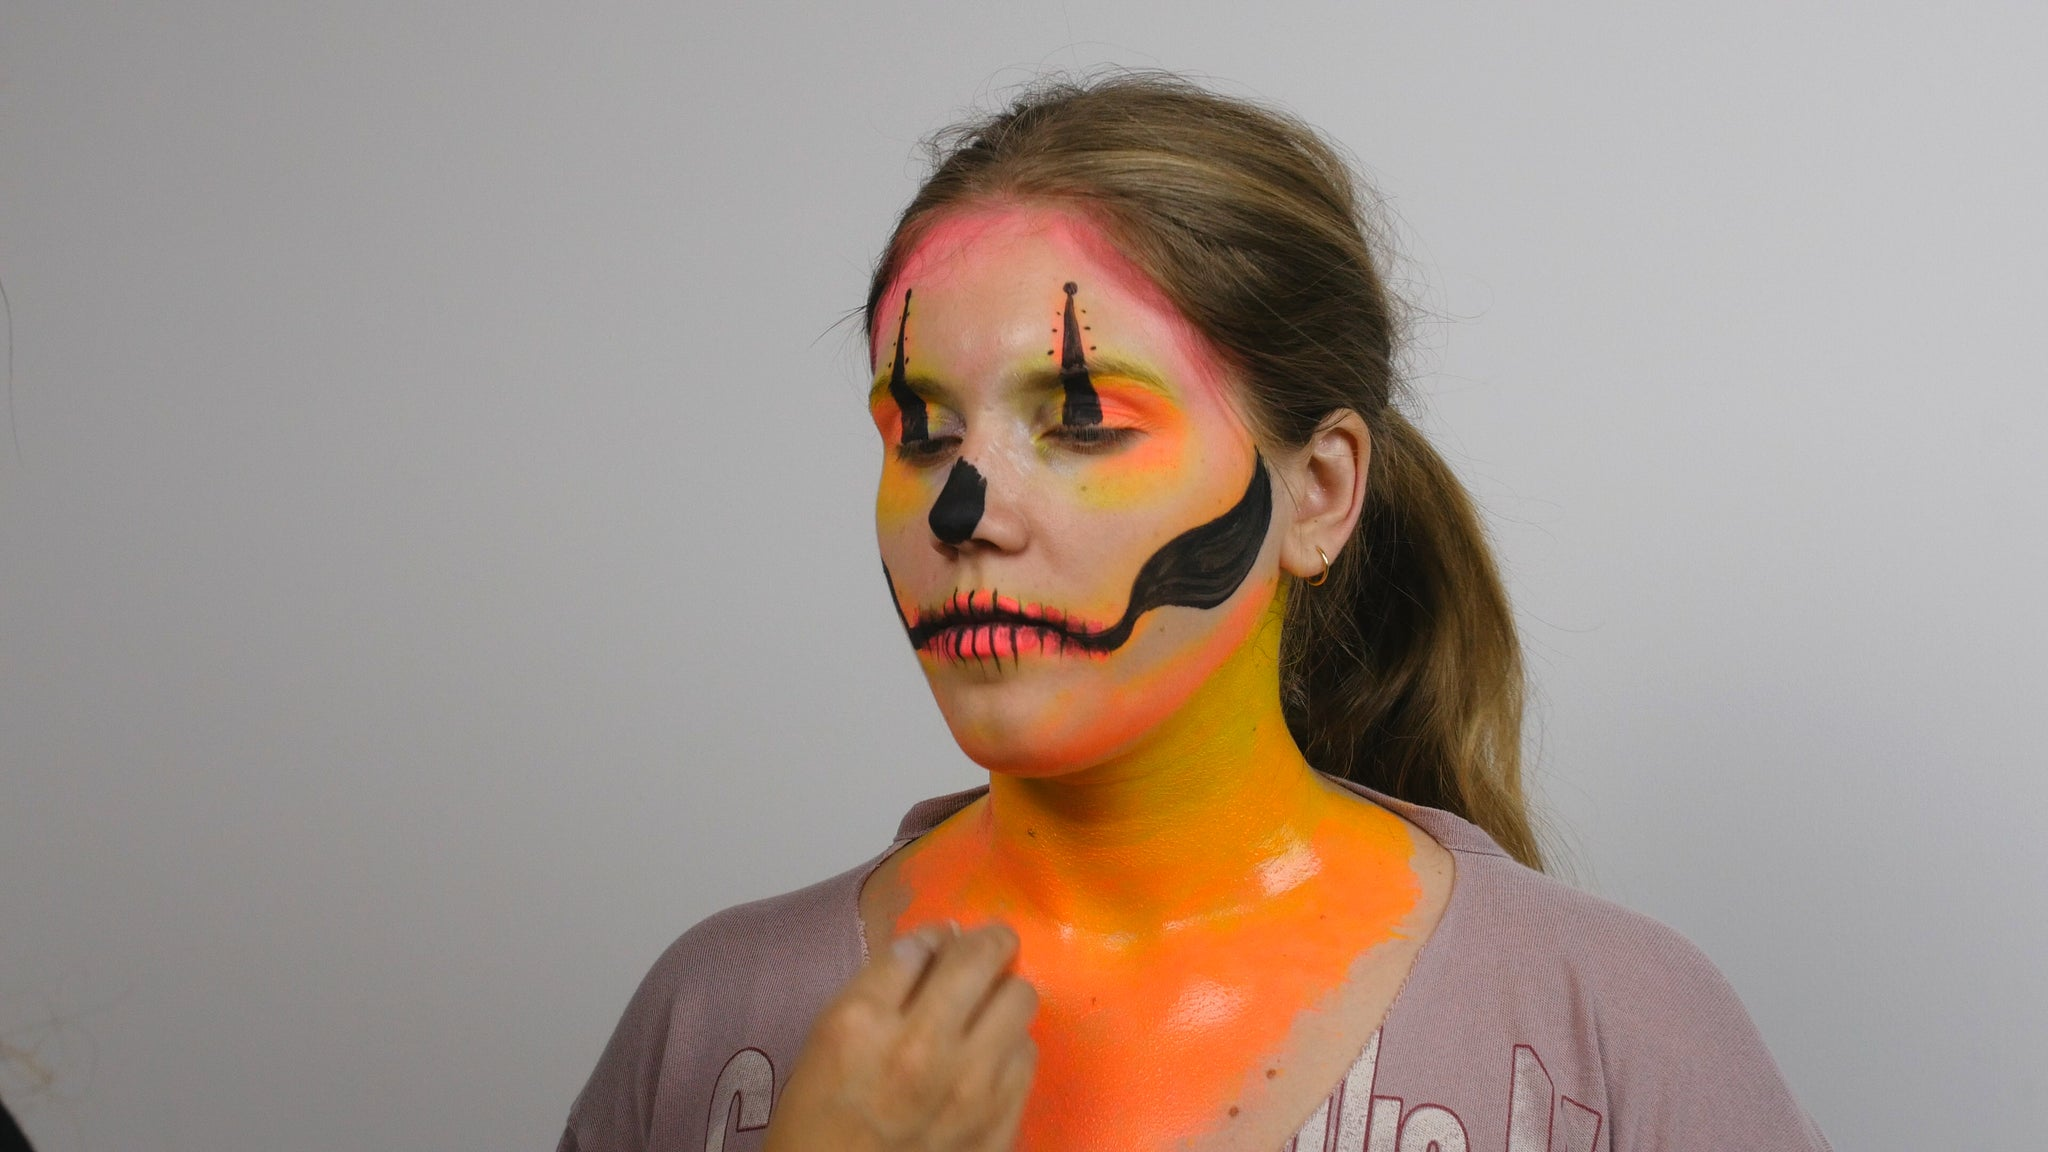 Use sponge to apply yellow and orange face paint to neck and chest area